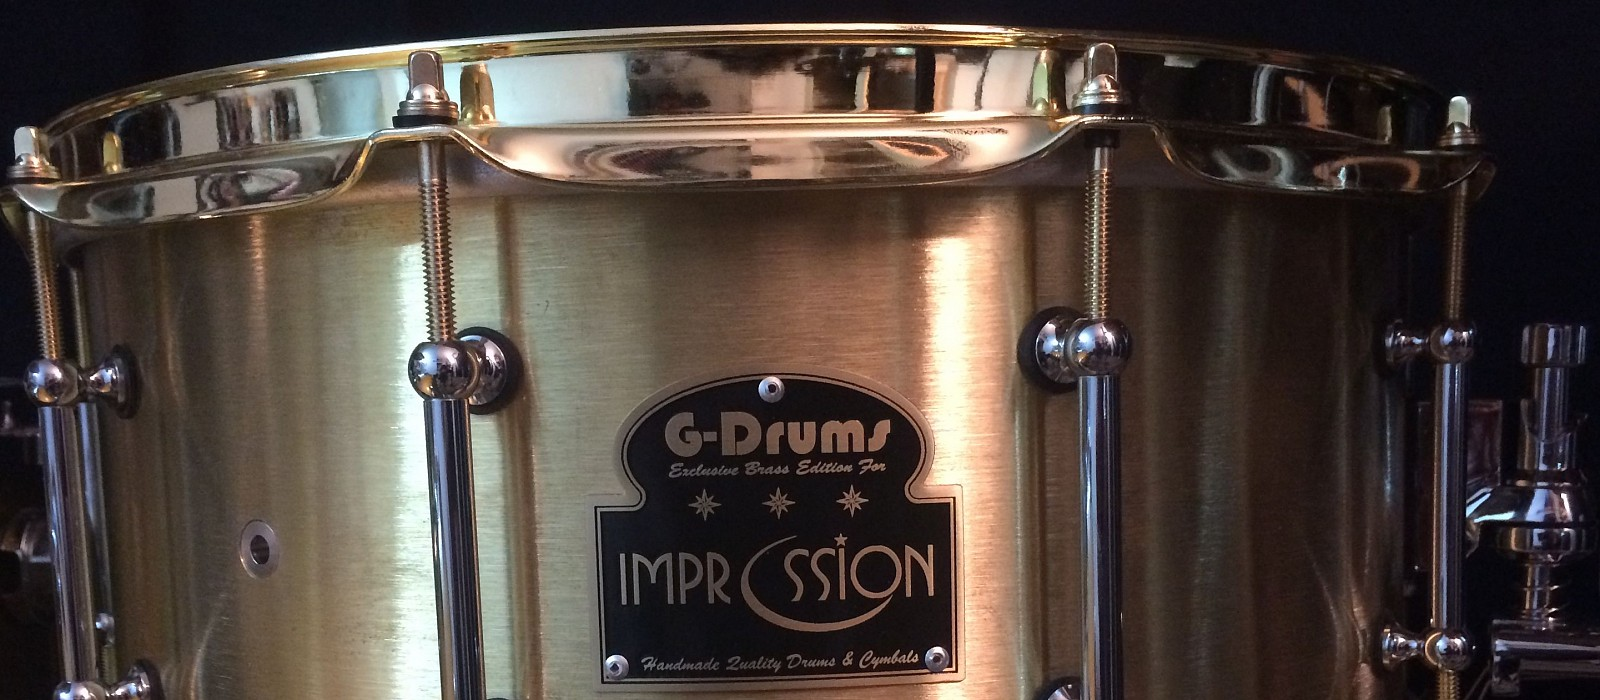 Caja Impression/G-Drums Luxury Brass 14x6´5